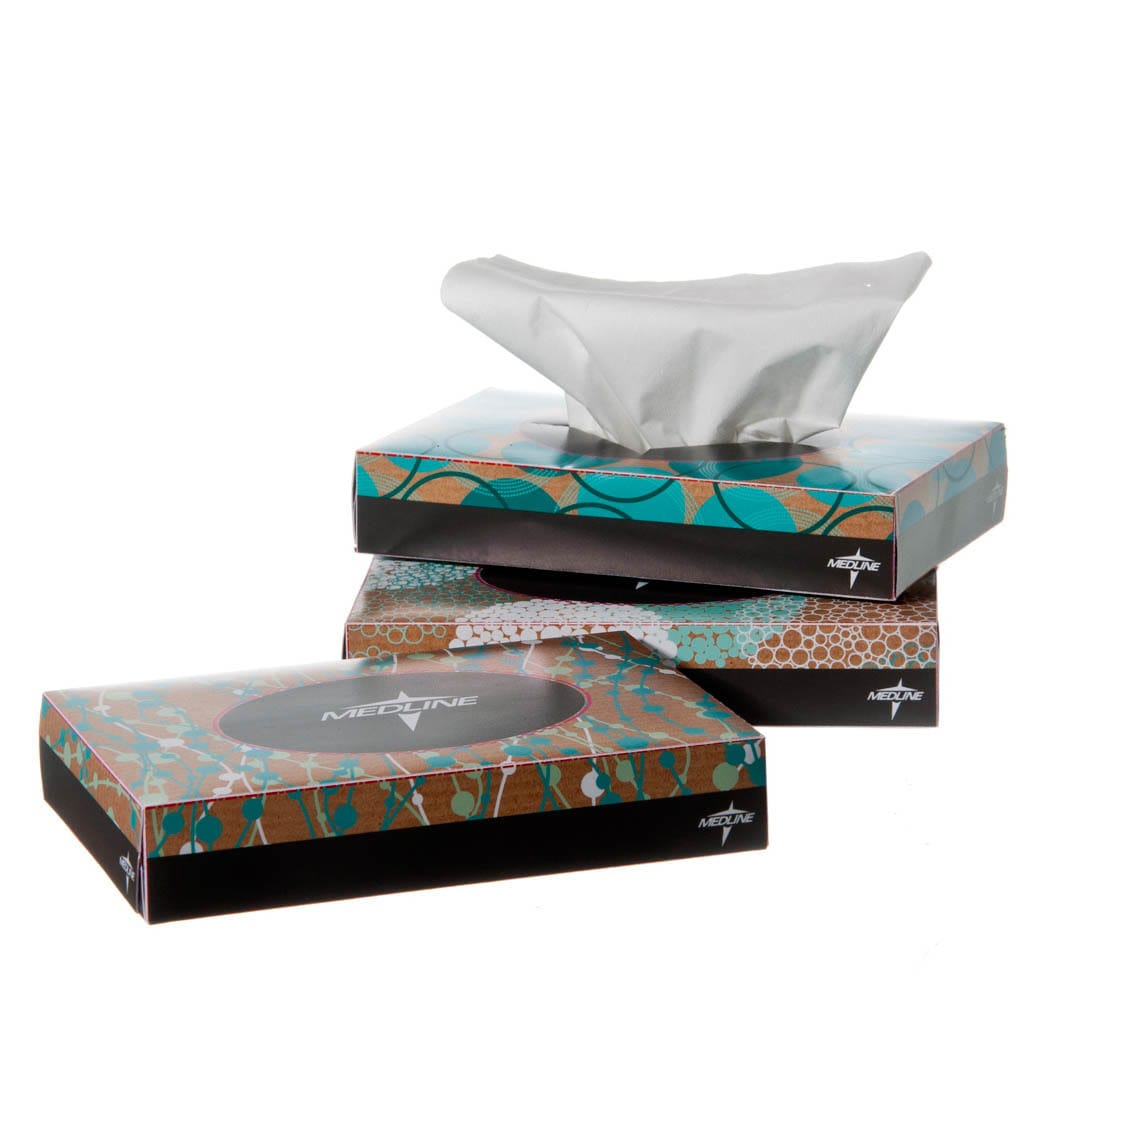 Health and Beauty by O Medline Standard Box Facial Tissue (Case of 200) at mygofer.com